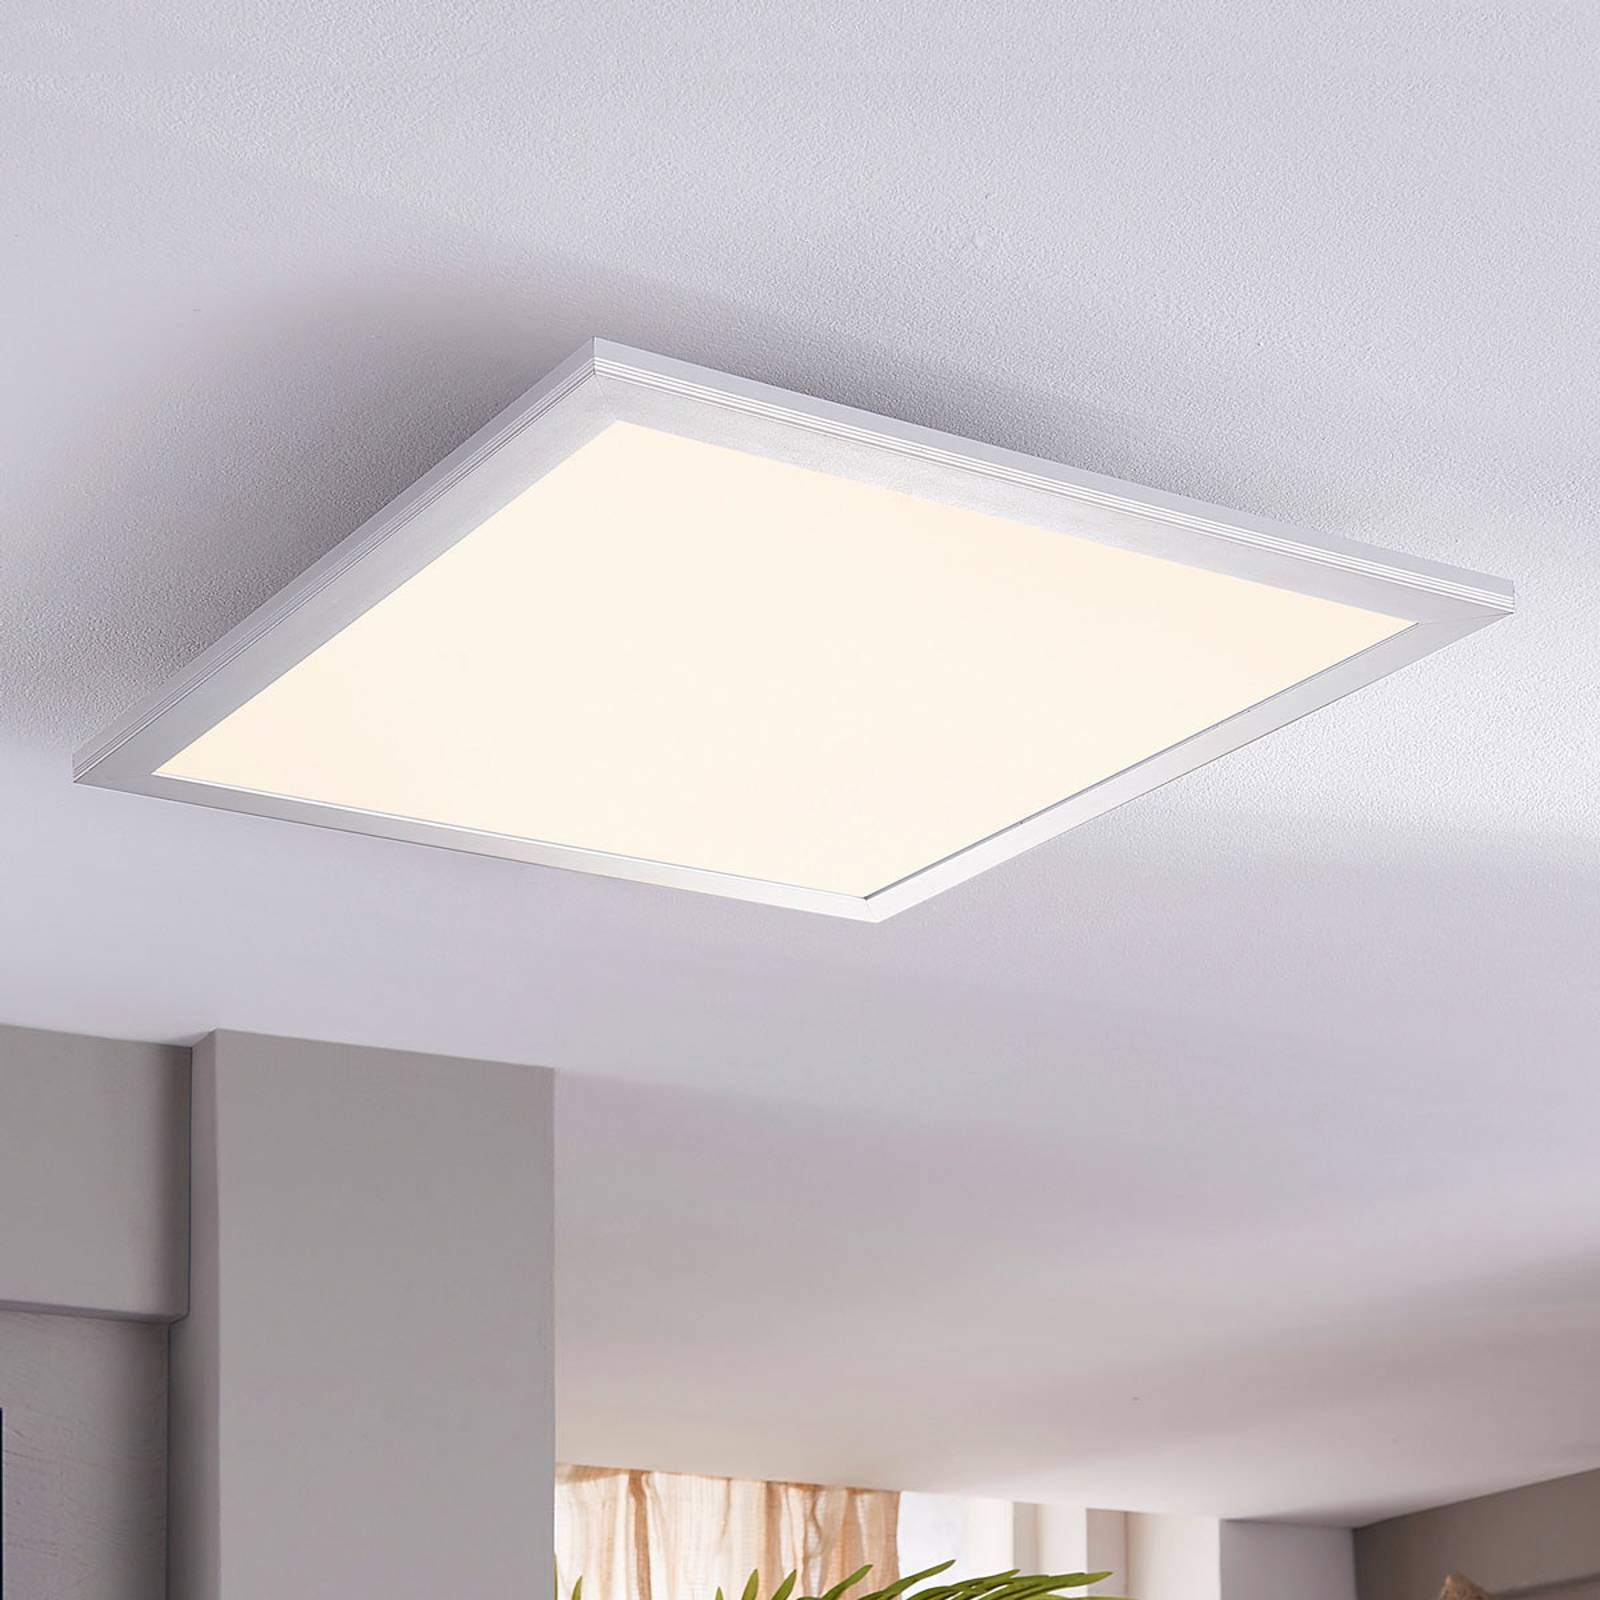 Lindby Livel LED-Panel, 4.000K, 40 cm x 40 cm von Lindby